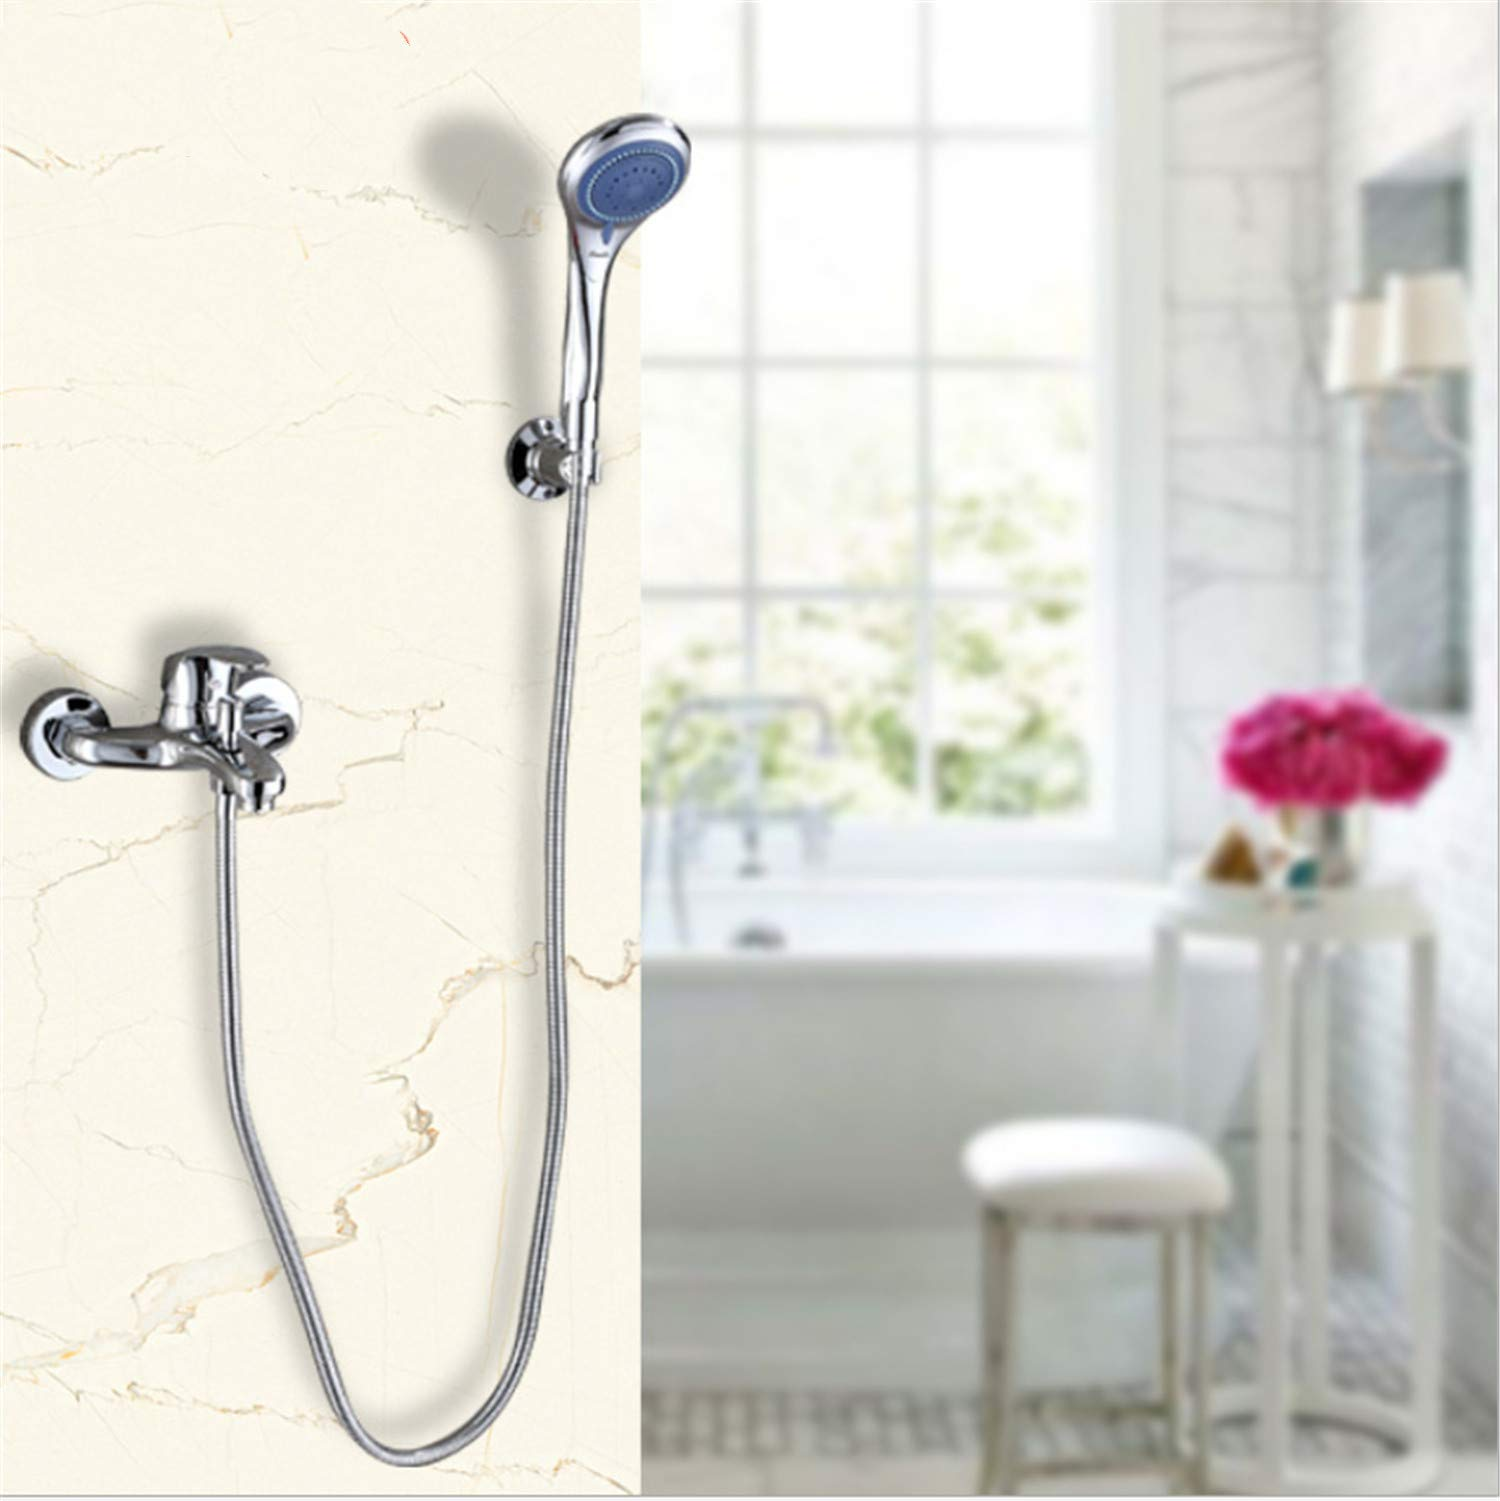 UNIQUE-F Shower Exposed Chrome-Plated Copper Selection Set Nozzle Hand-held Hood Simple Device Convenient